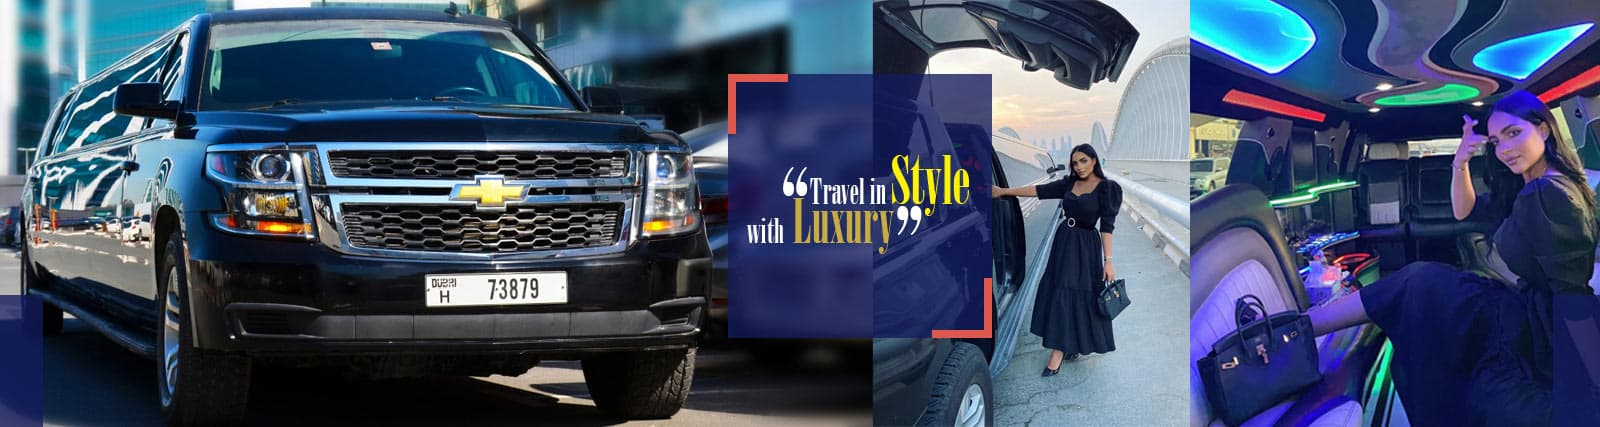 2 Hour Yacht Rental and Limousine Sightseeing Tour Combo Deals